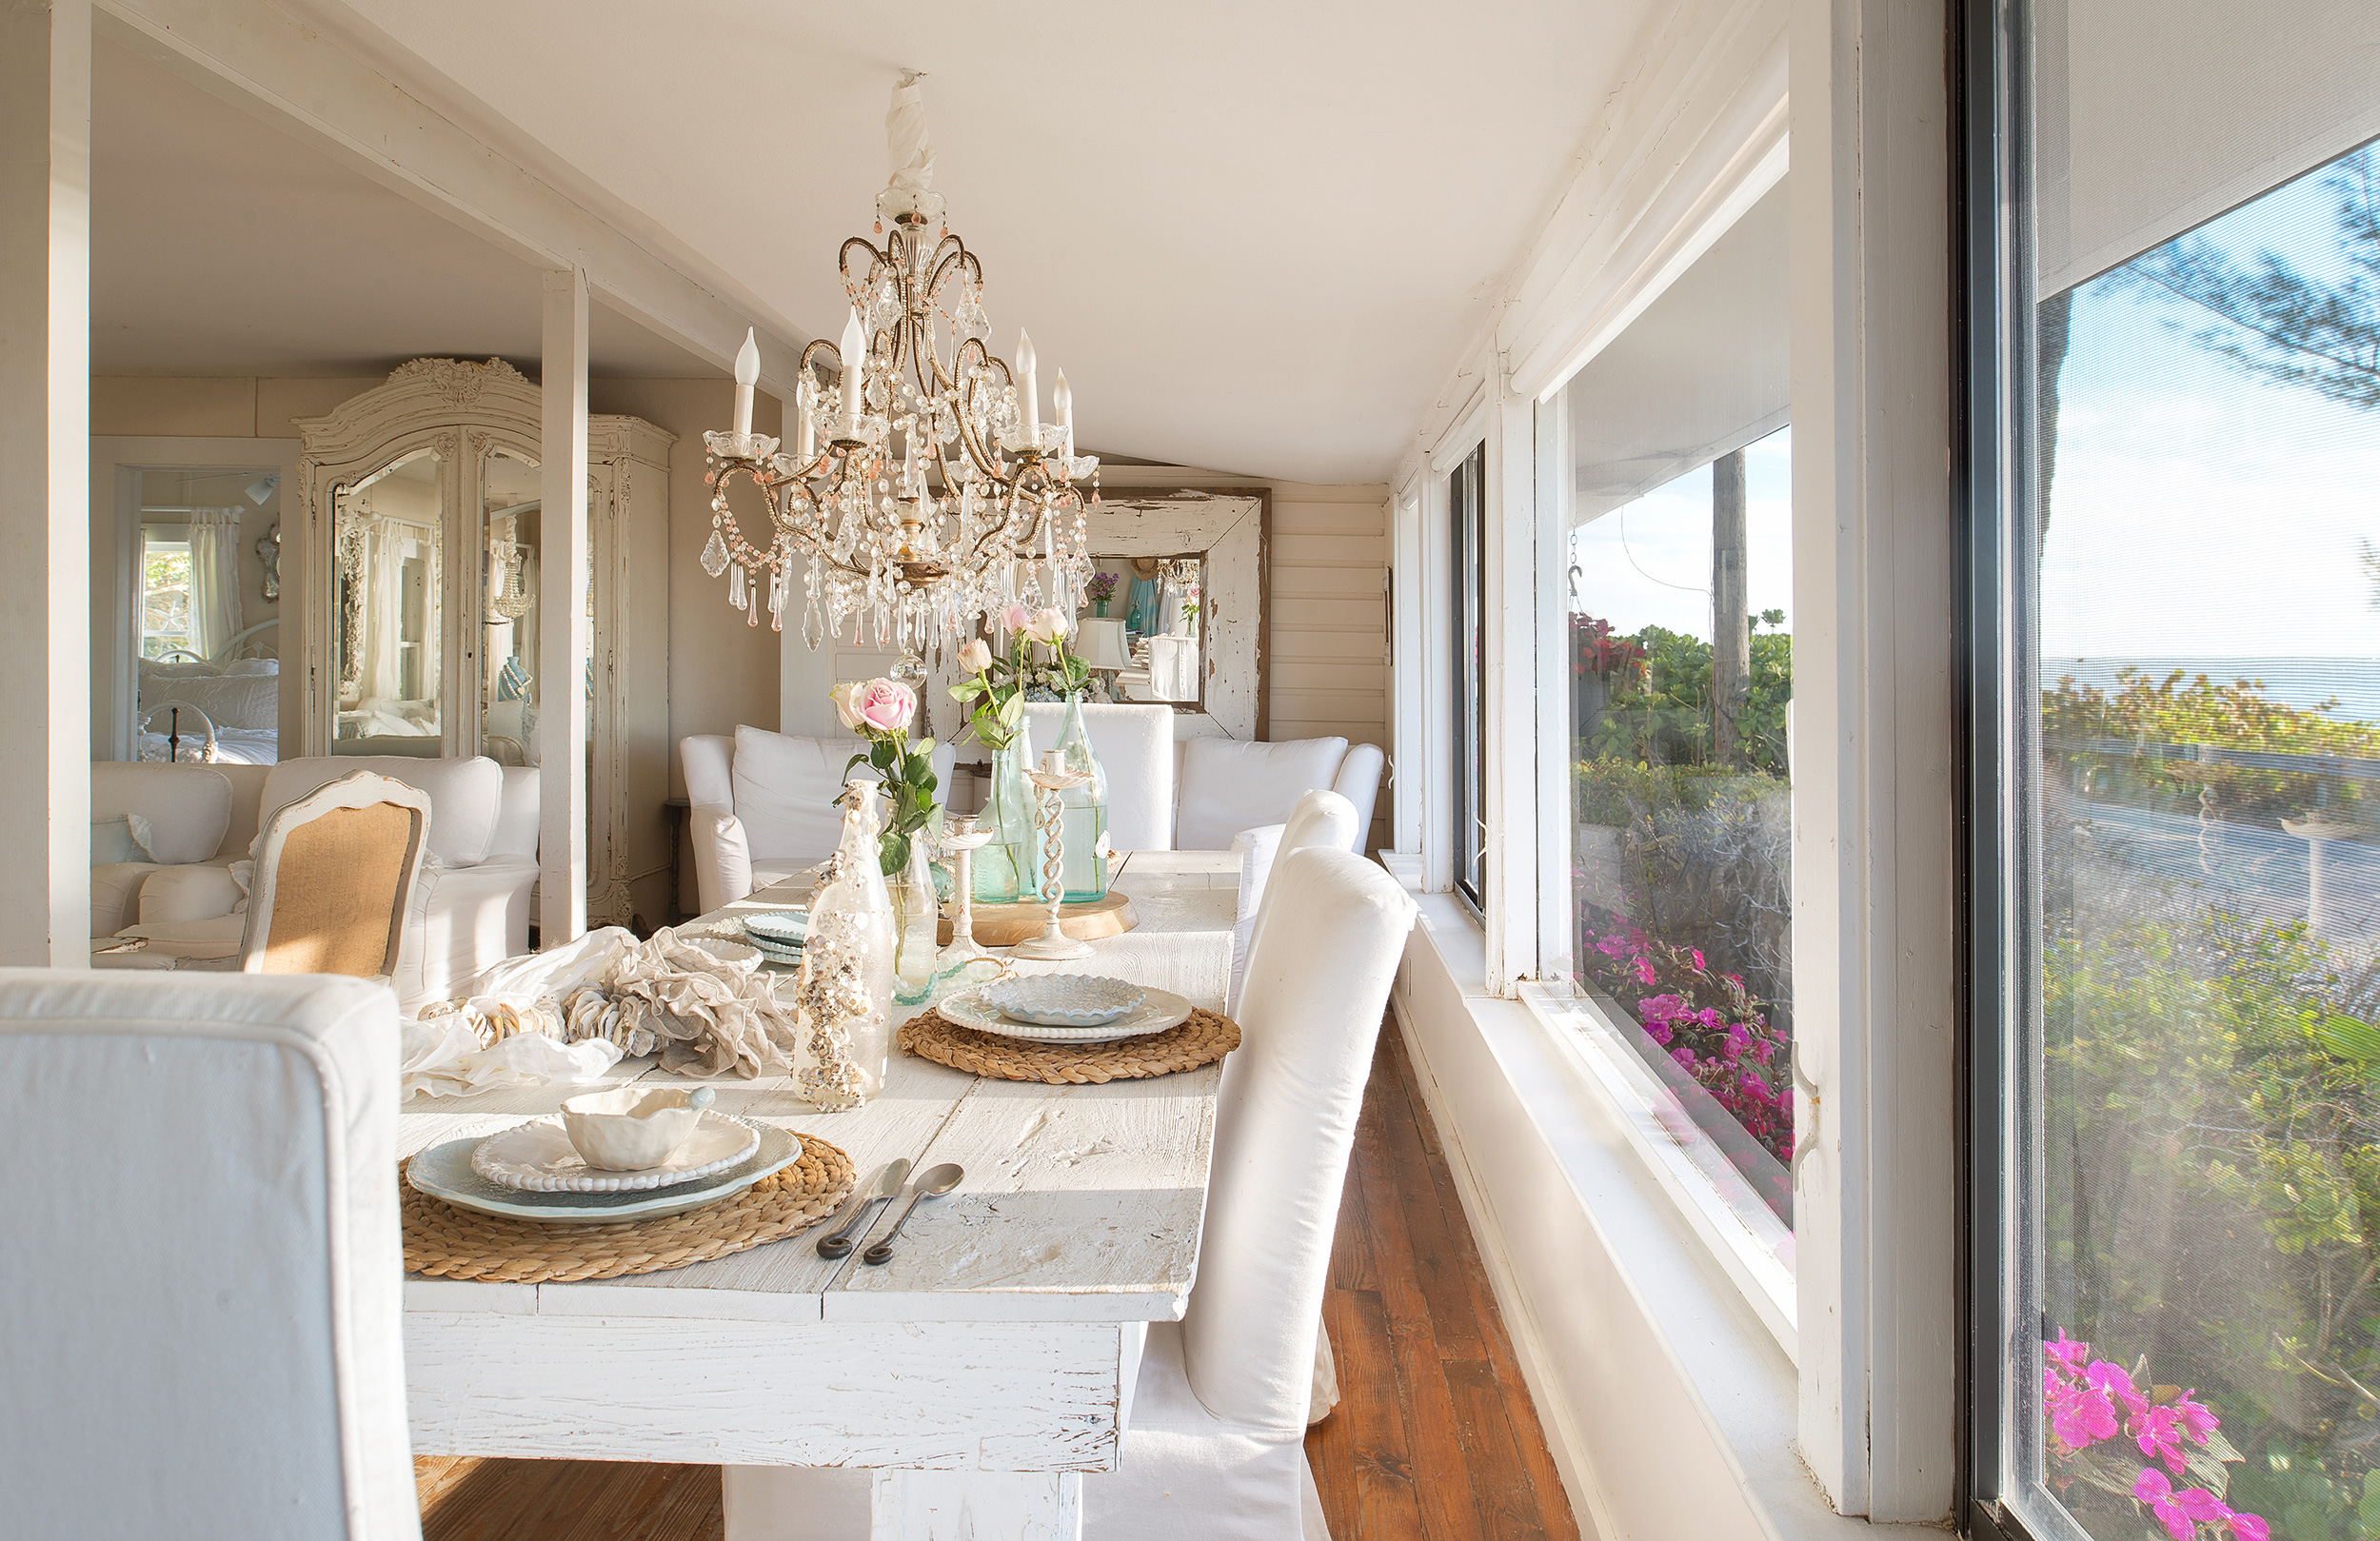 Dining room with an open floorplan